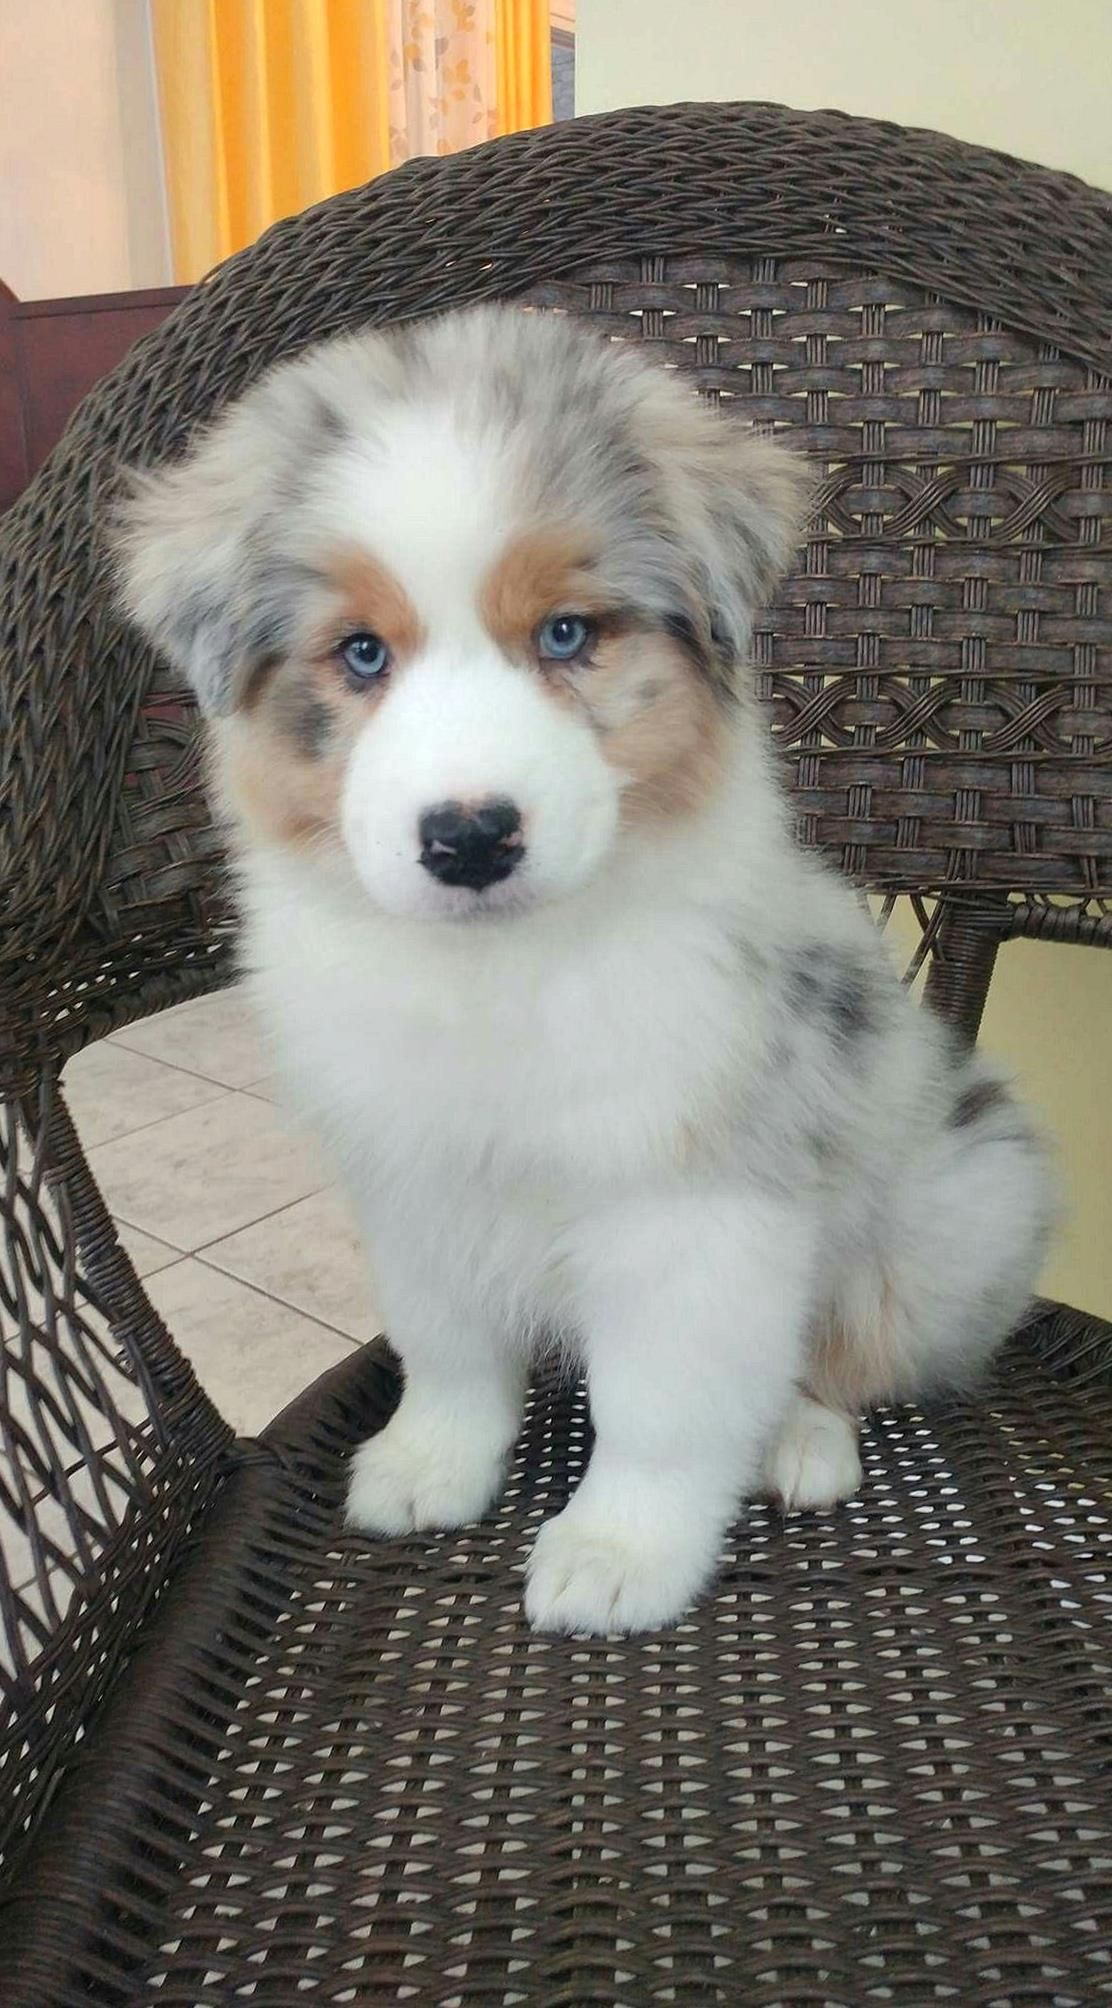 Meet Noelle Our Beautiful Miniature Australian Shepherd Puppy She Has A Great Red Tricoat With Copper And Whit In 2020 Dog Breeds Top Dog Breeds Healthiest Dog Breeds